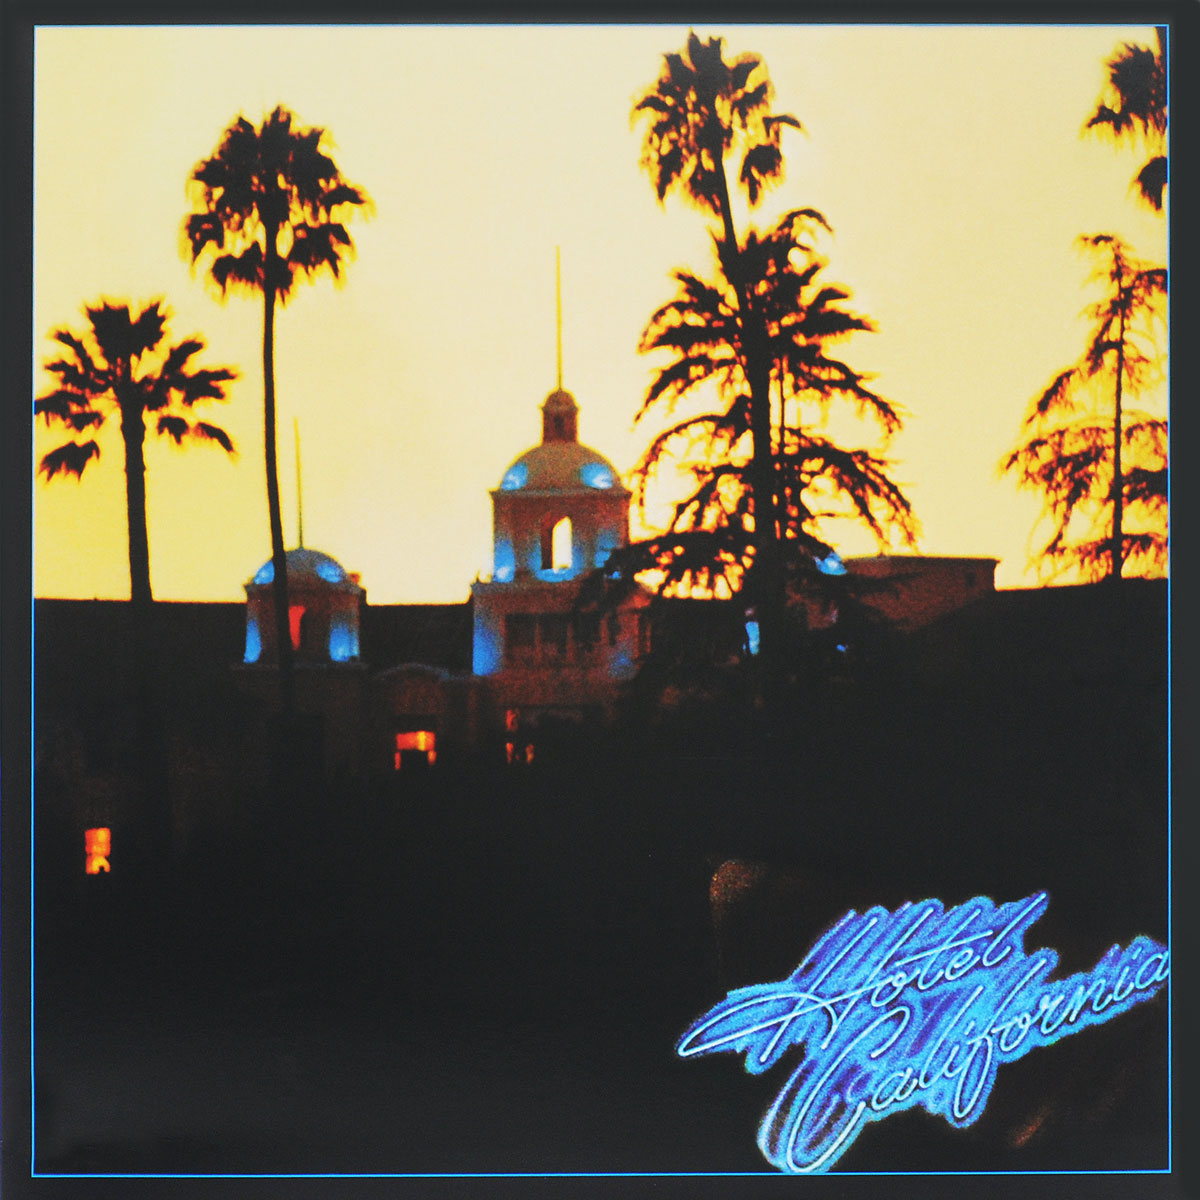 """The Eagles"" Eagles. Hotel California (LP)"